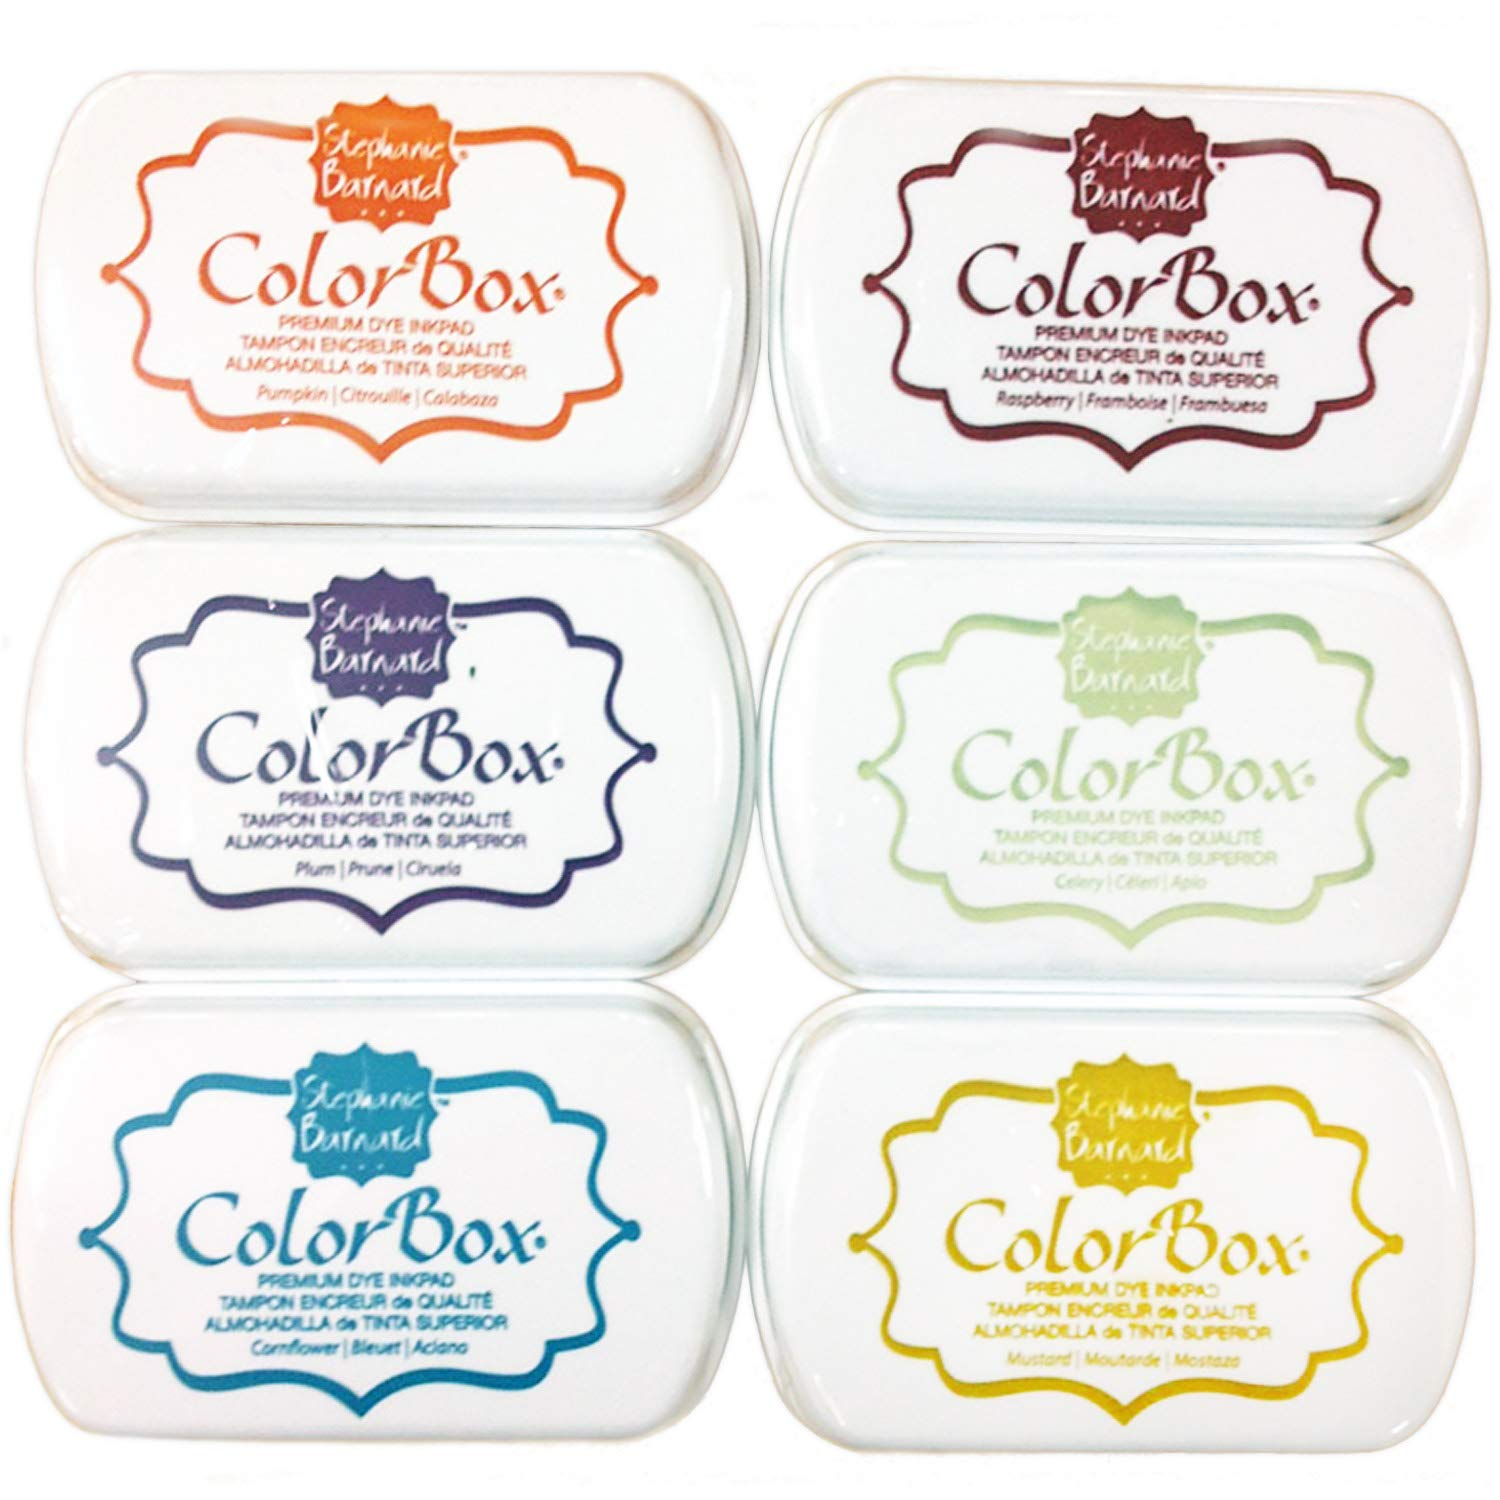 ColorBox Ink Pad Multi Pack by The Stamps of Life - Ink Pads Set 3